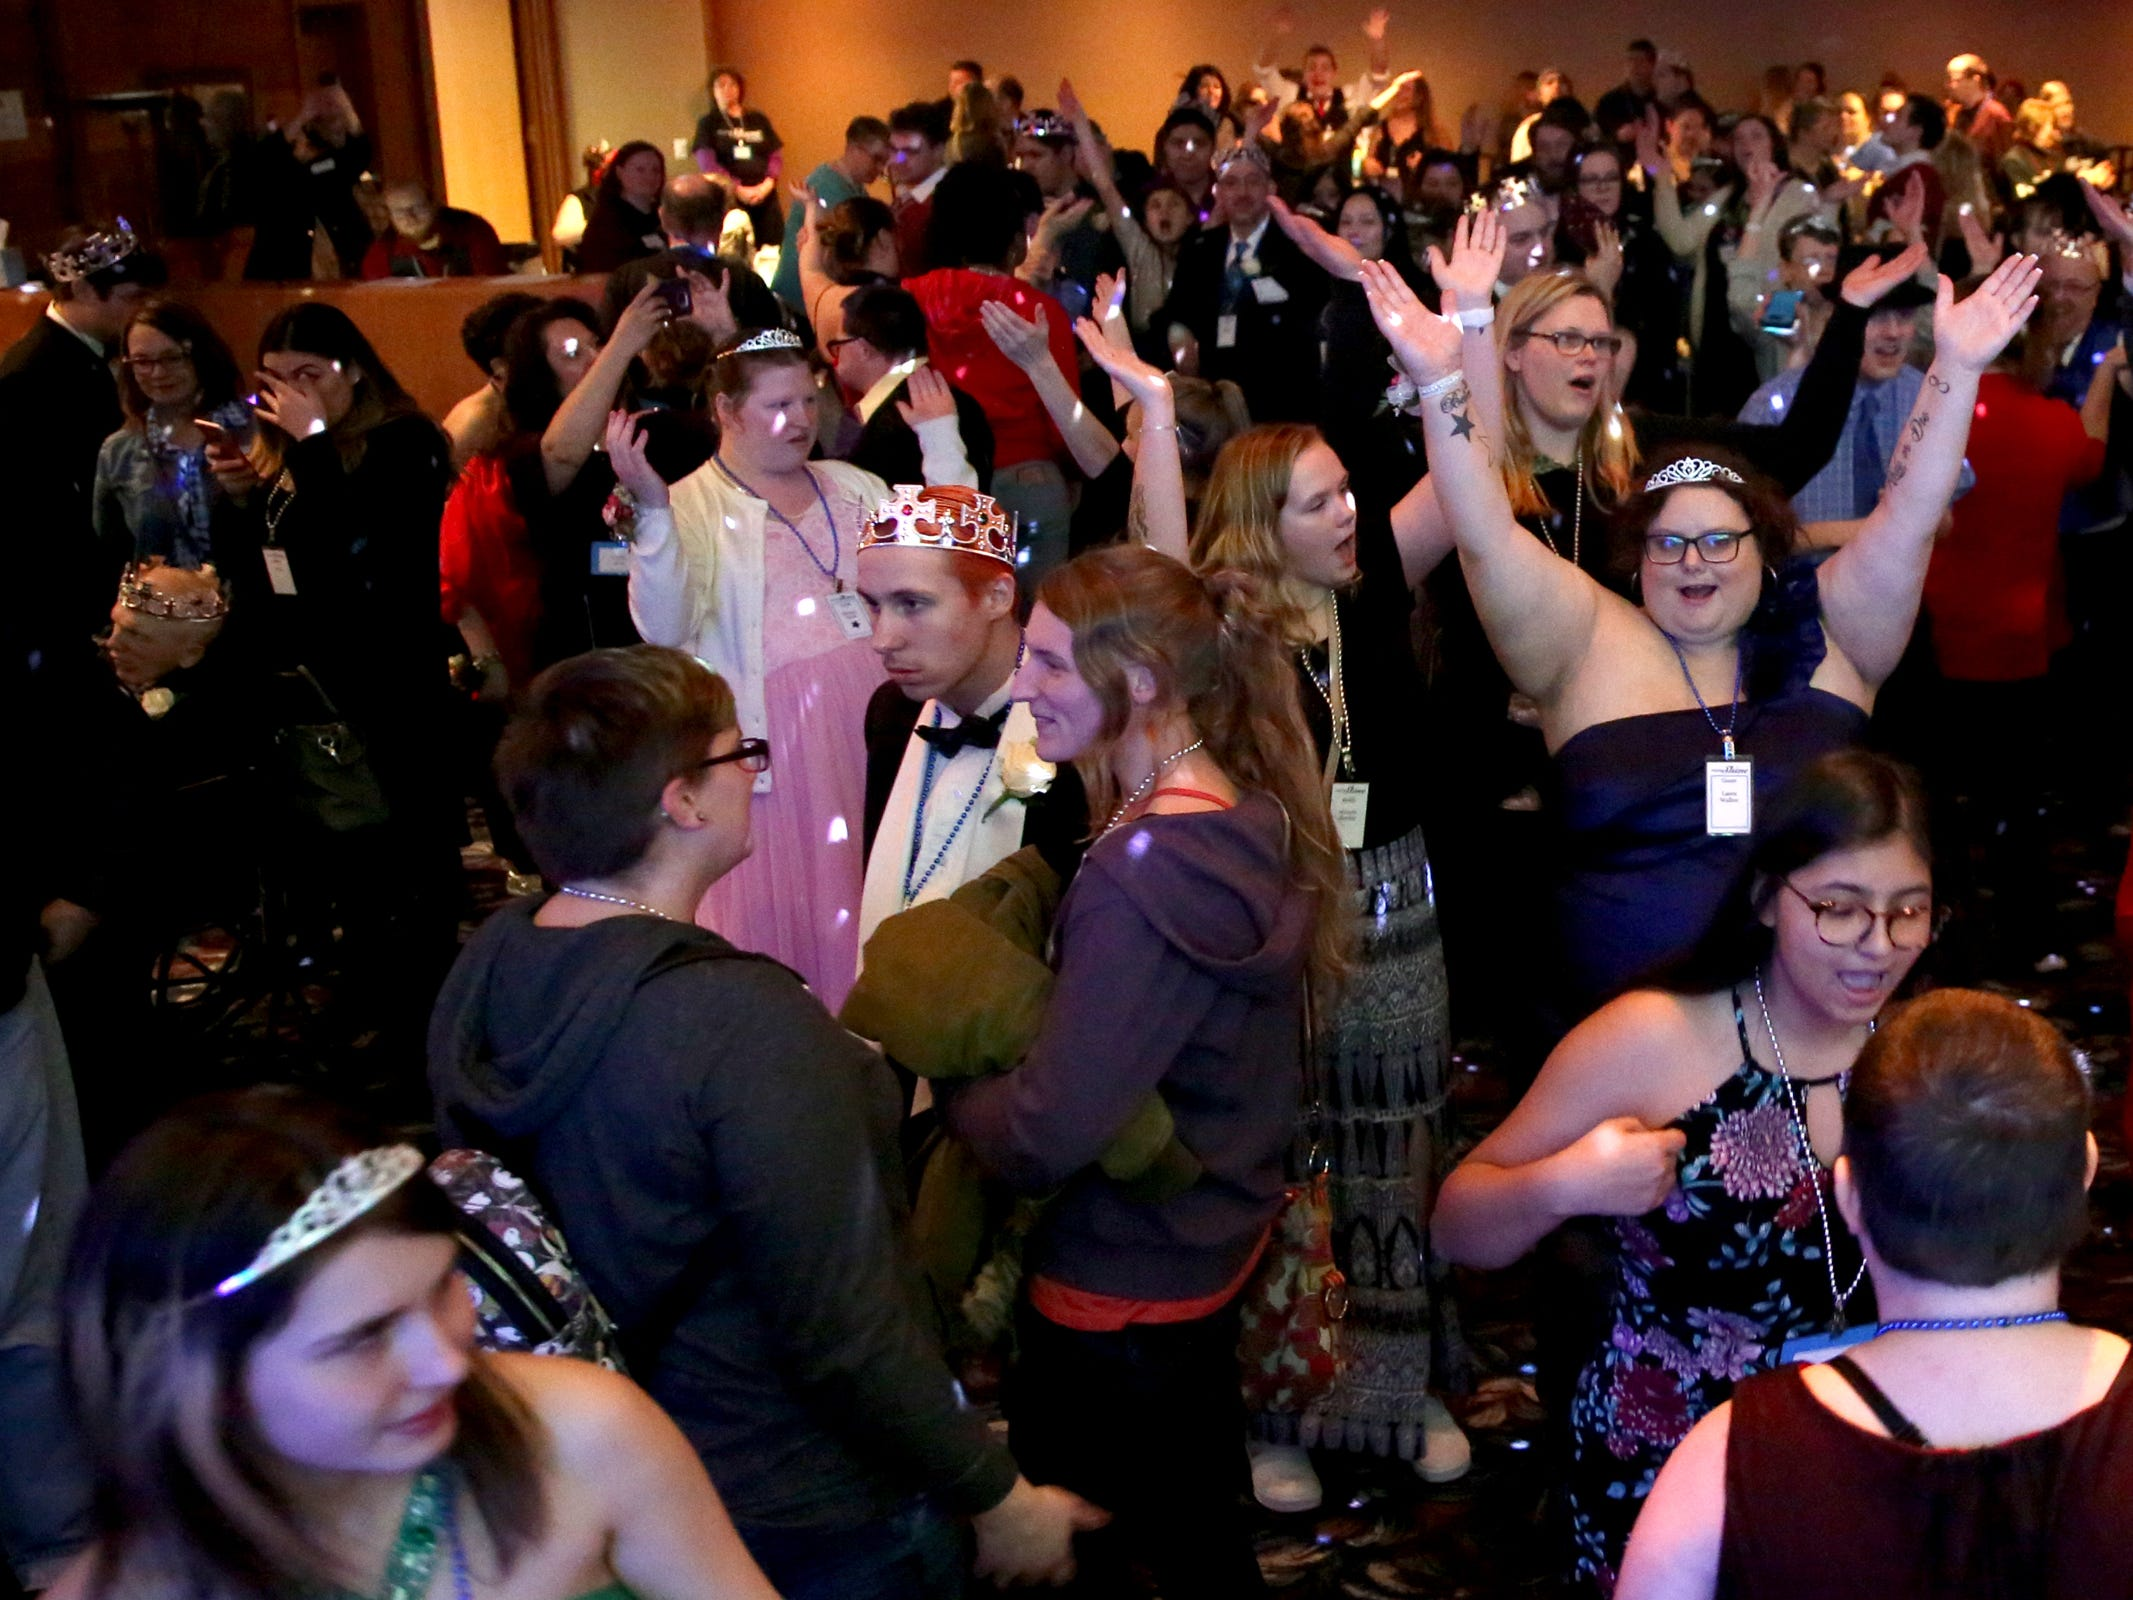 People dance at Night to Shine, a prom night experience for people with special needs, at Salem Alliance Church on Friday, Feb. 8, 2019.